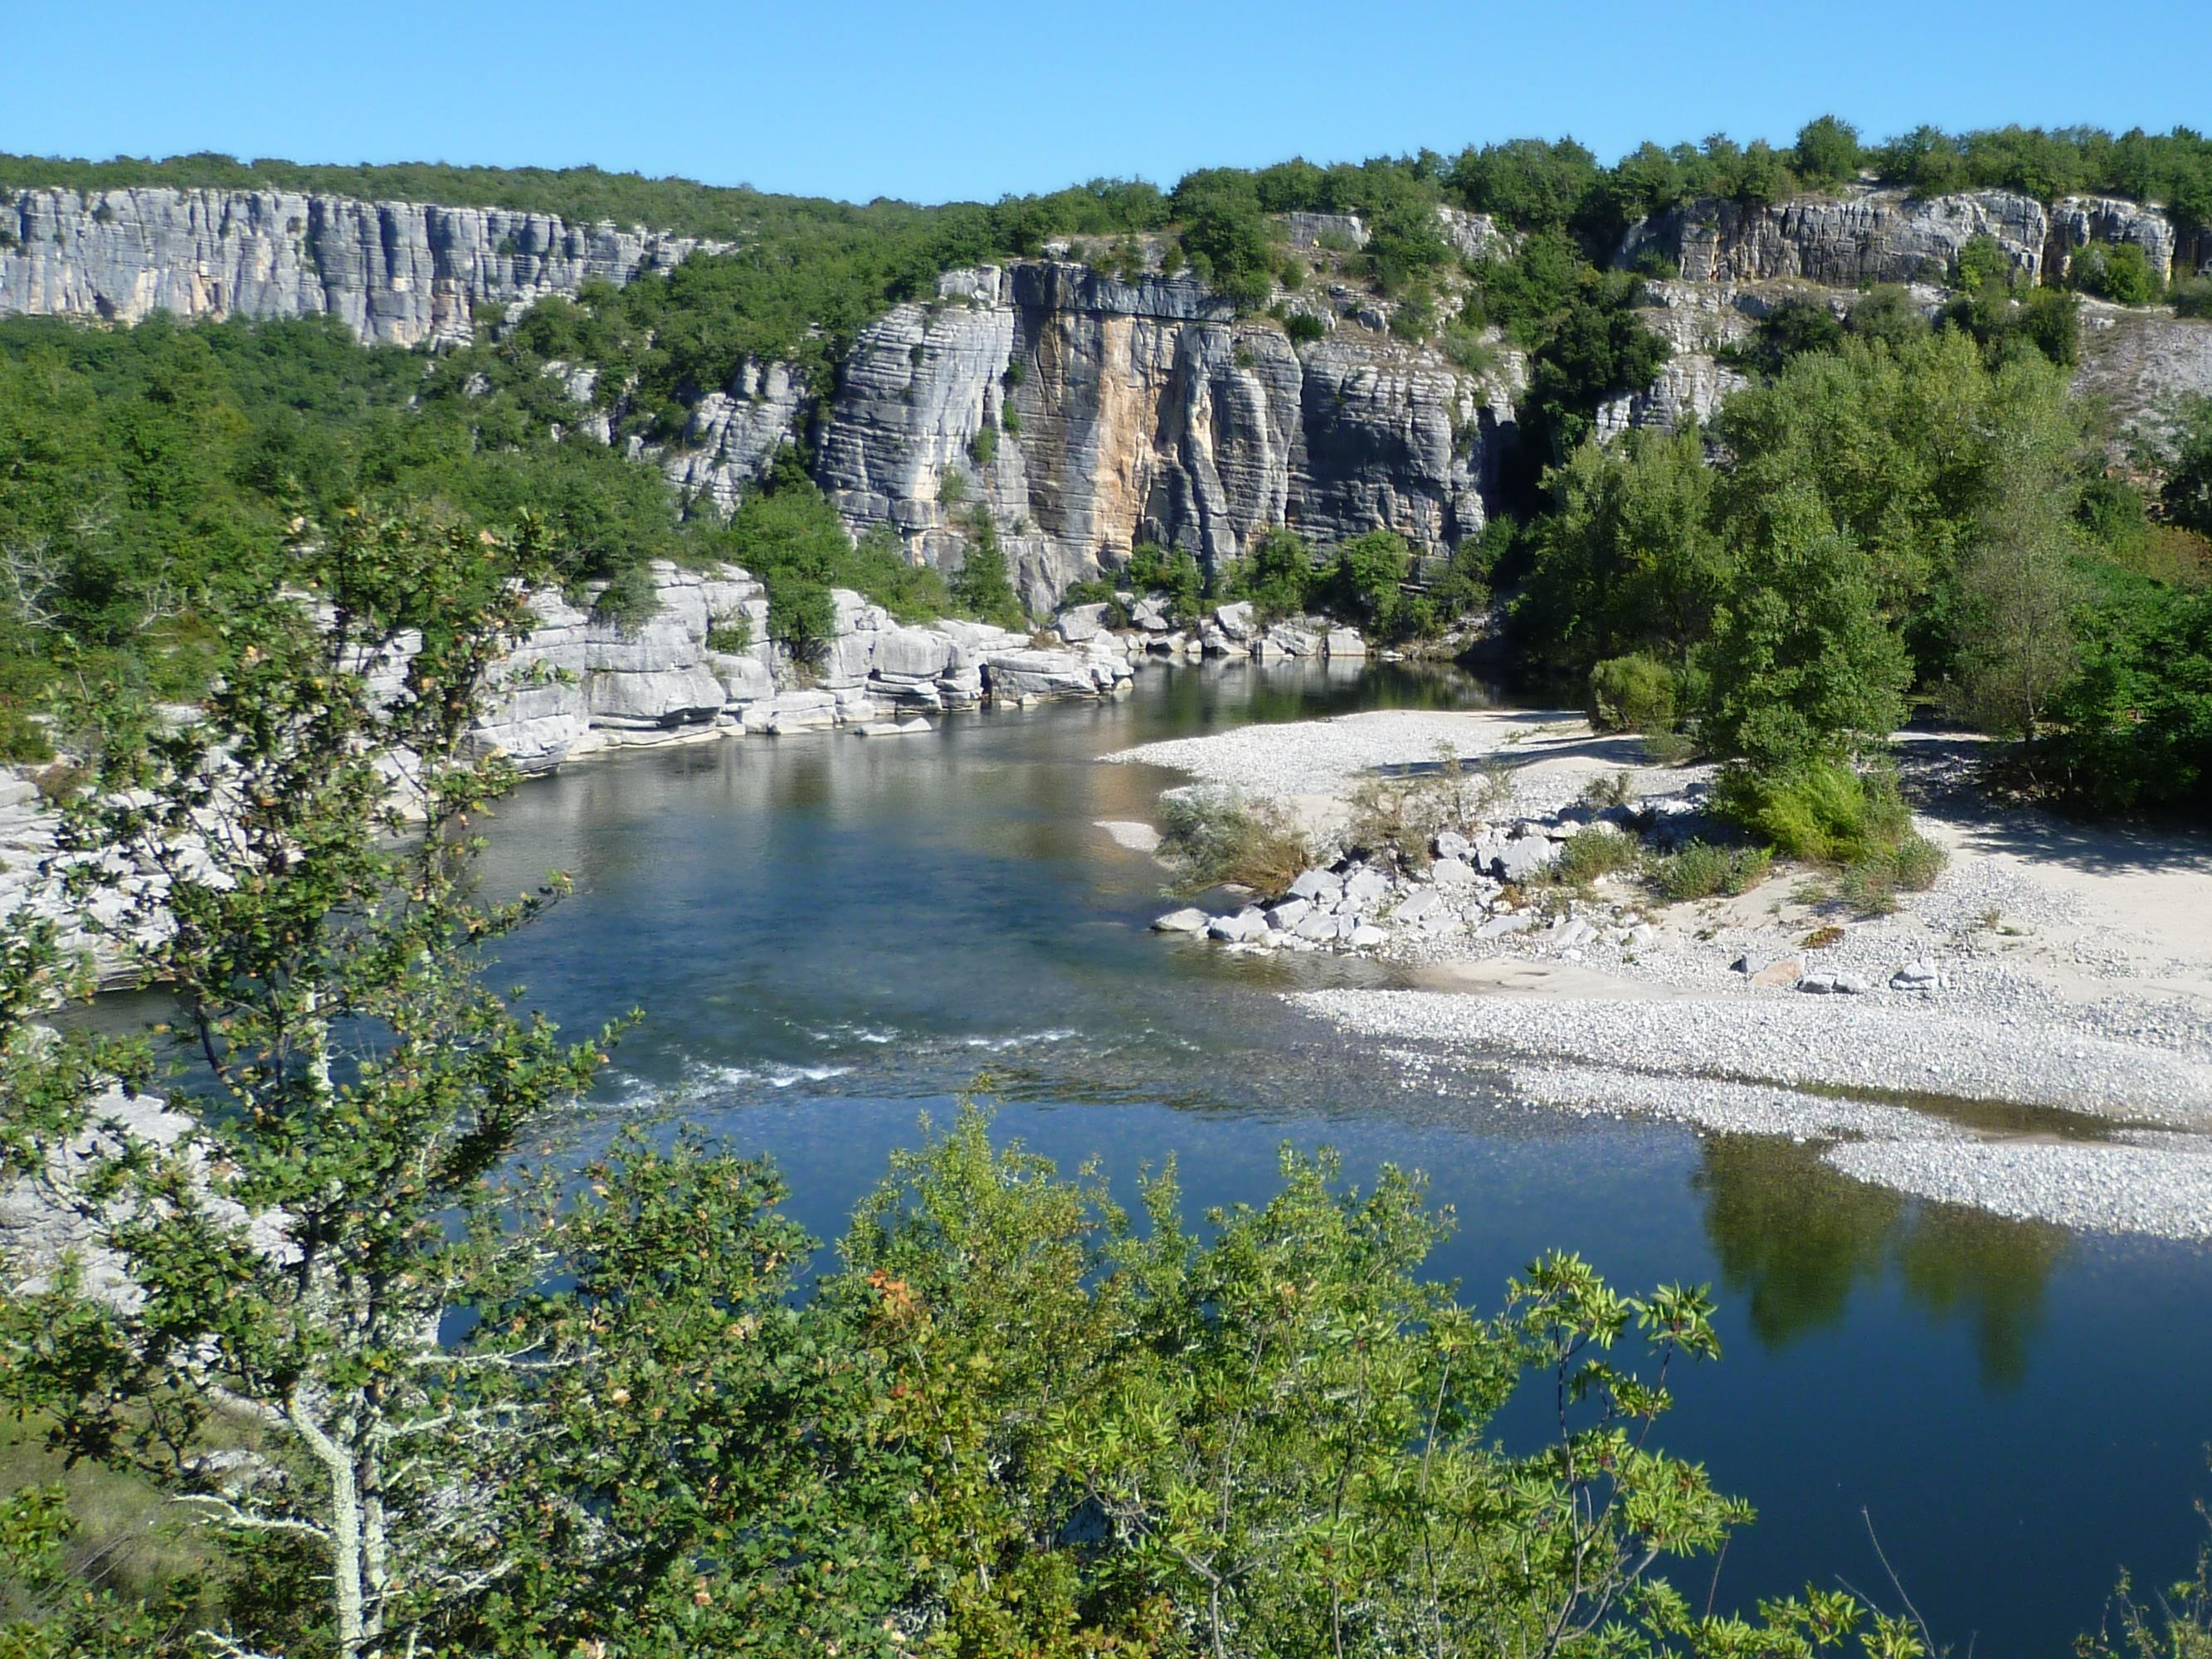 Camping Le Coin Charmant - Chauzon